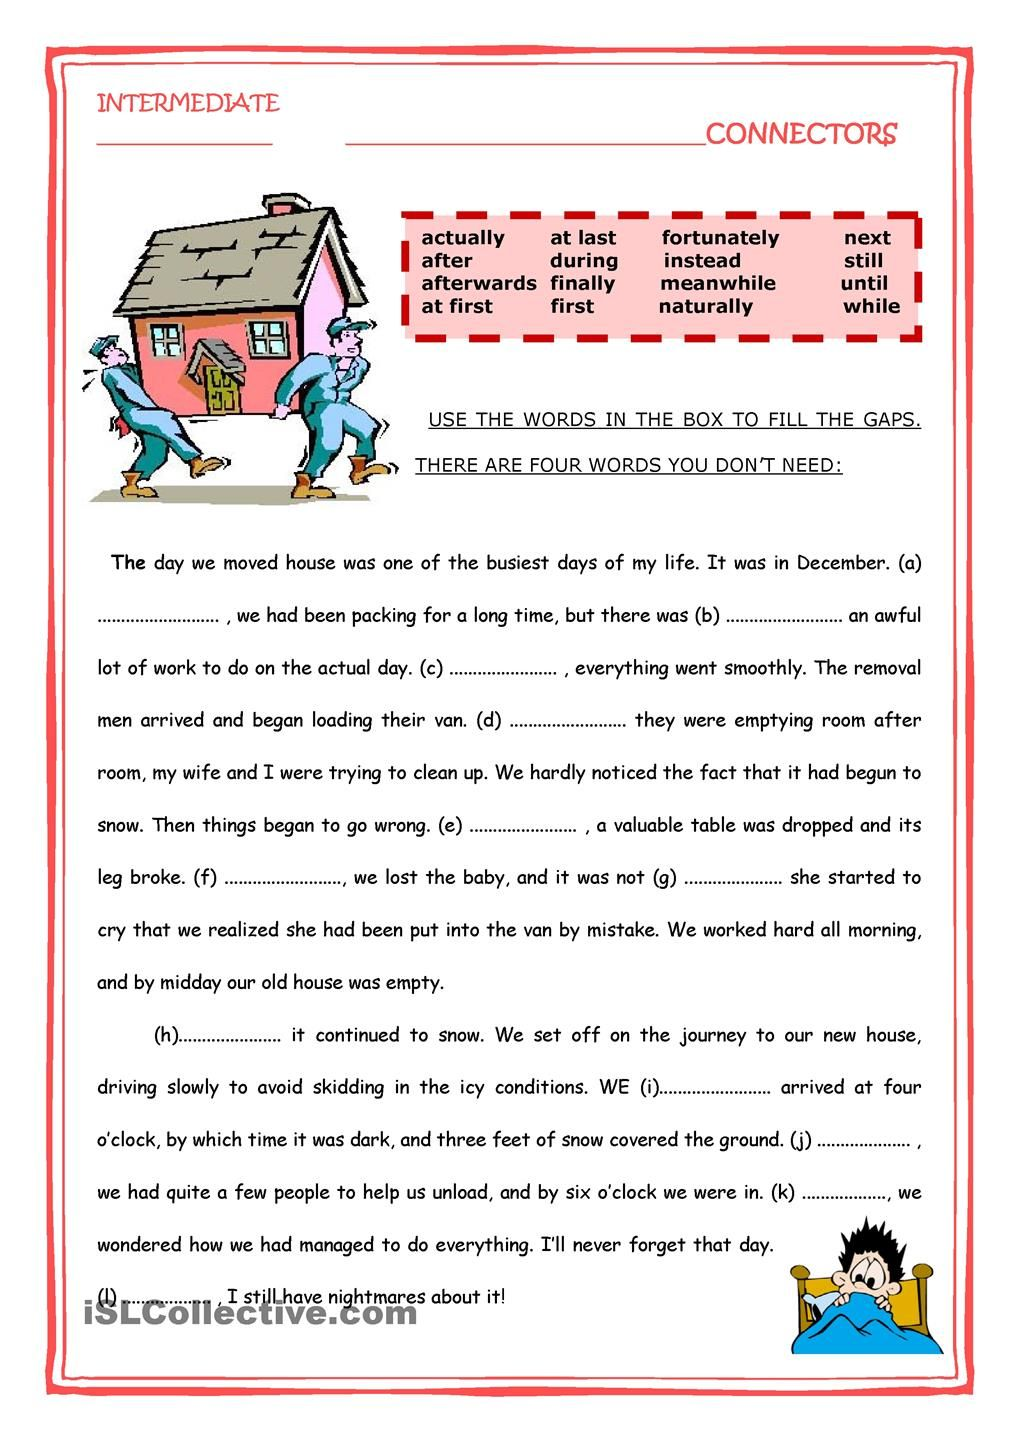 worksheet Worksheets On Connectors In English Grammar conecctors connectors pinterest english worksheets and activities worksheet free esl printable made by teachers